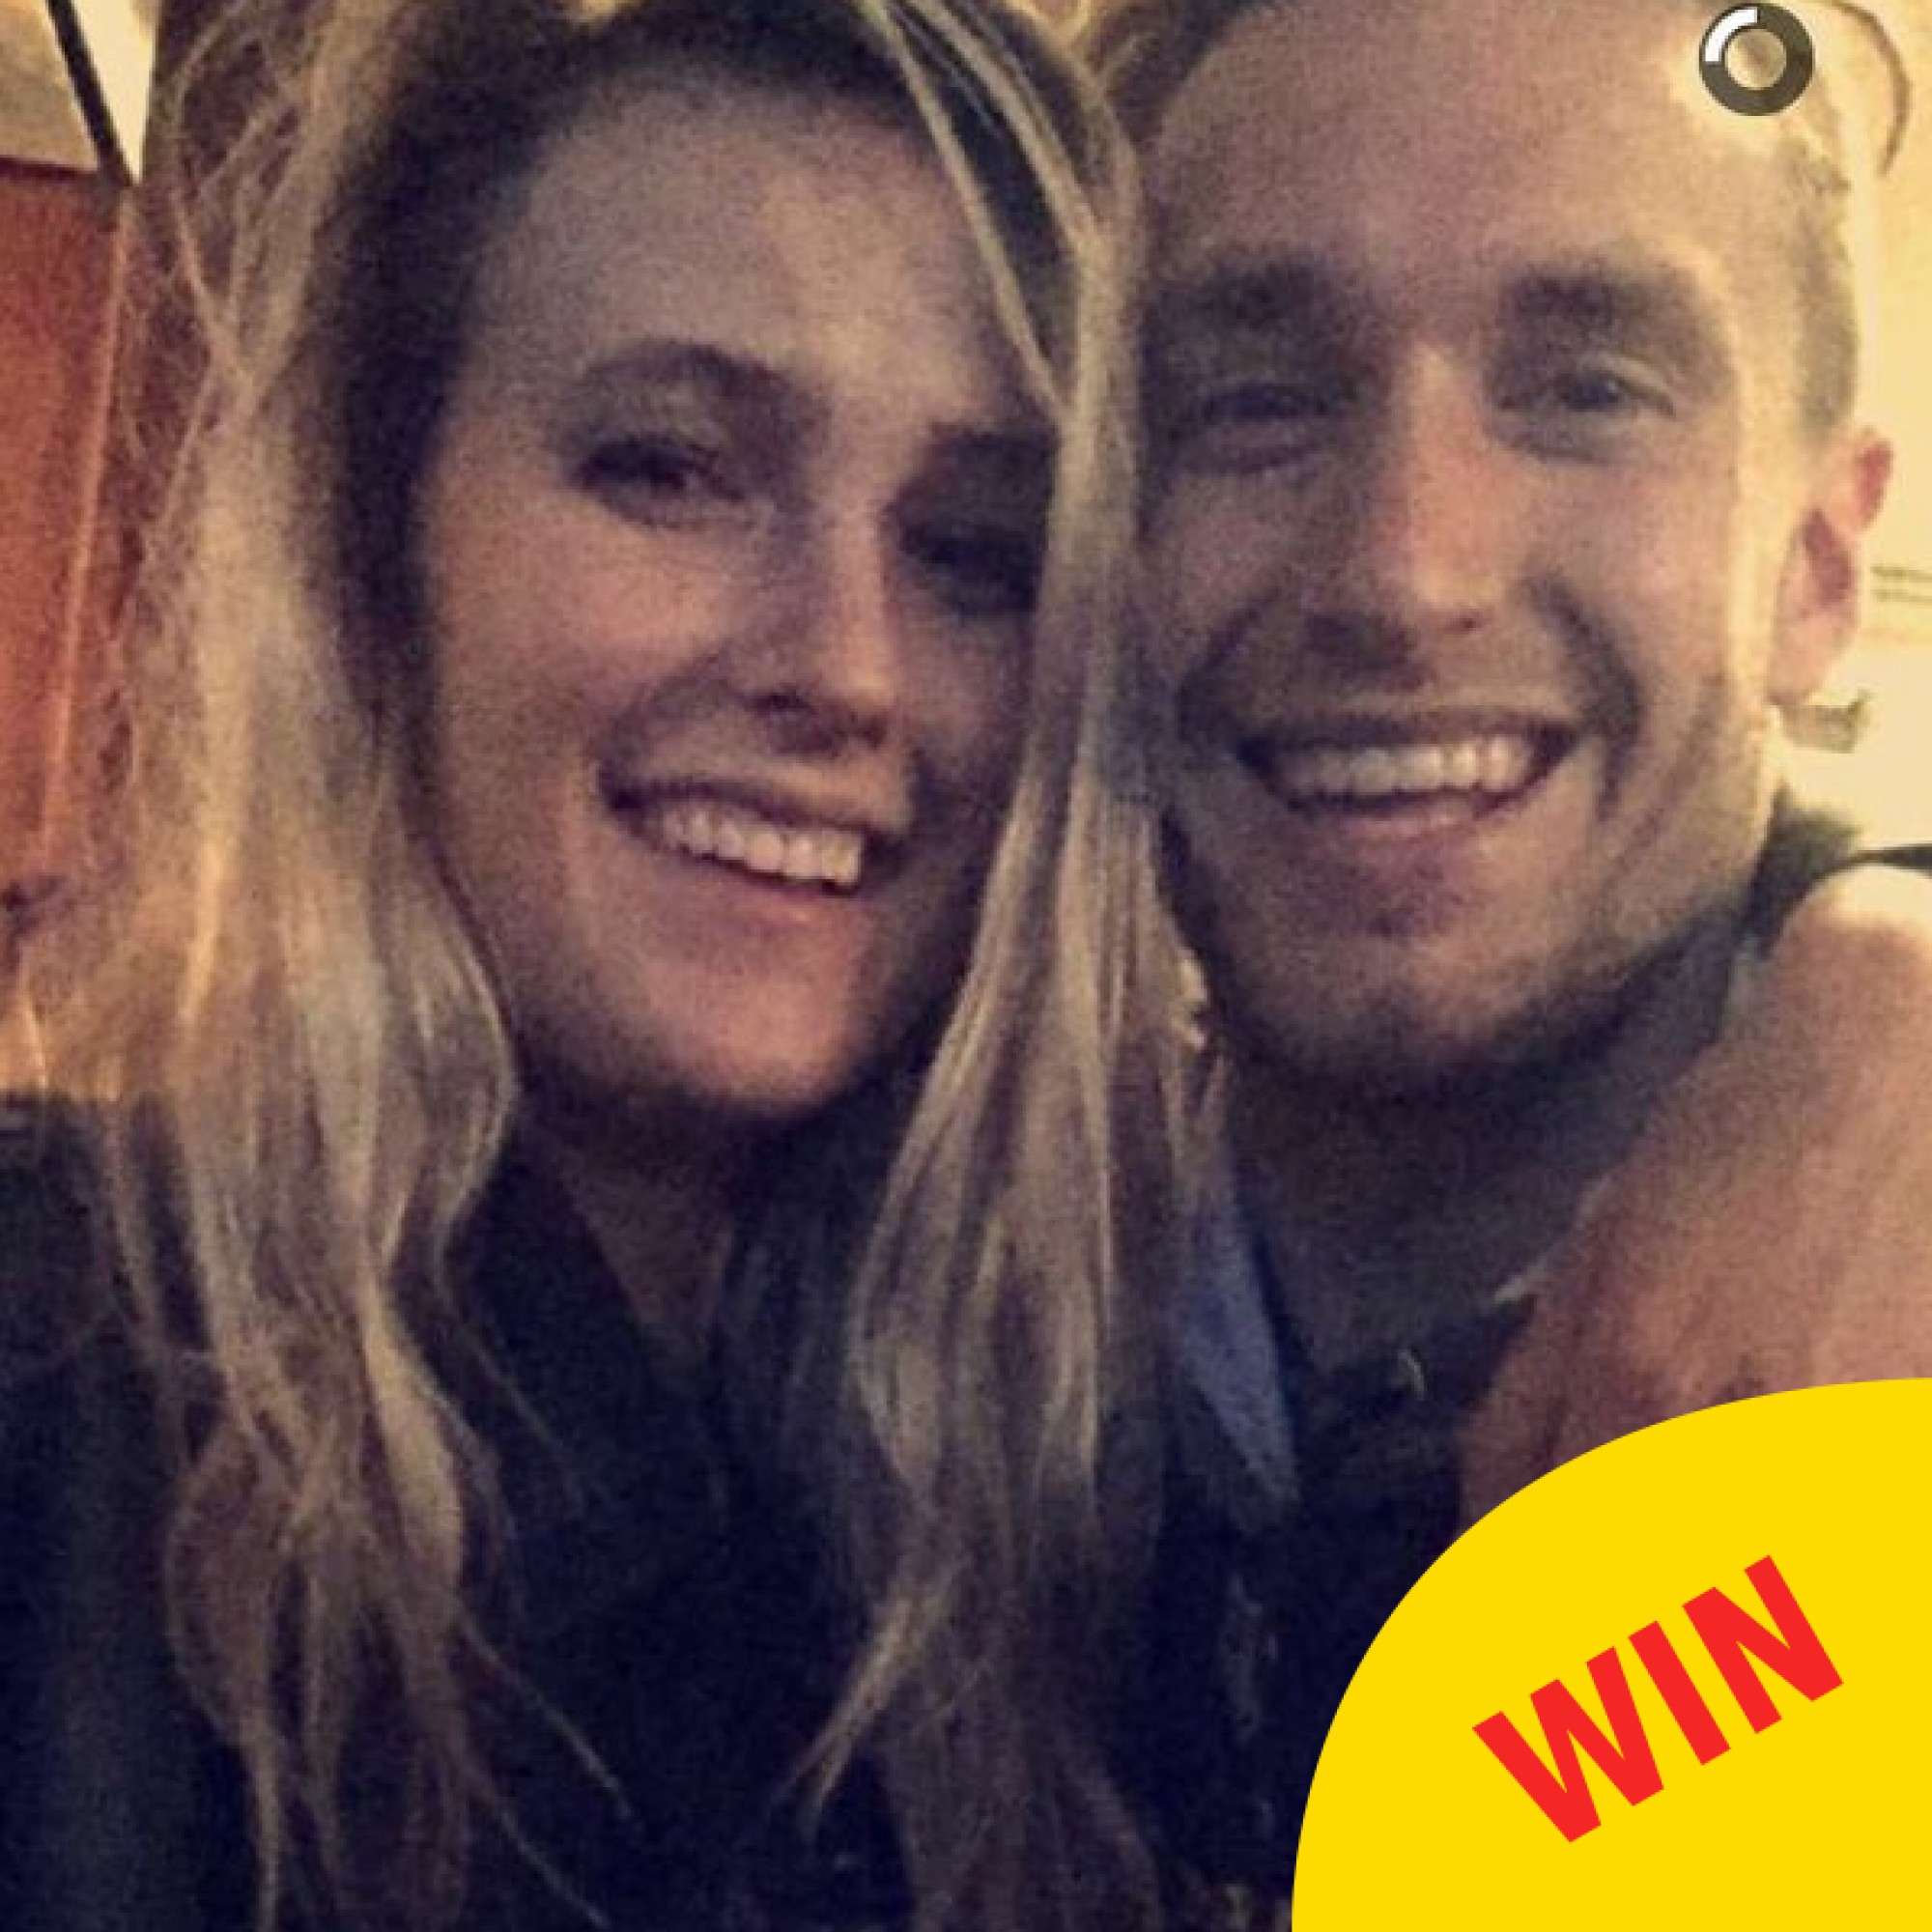 Two students turned their campus Snapchat into a sweet love story